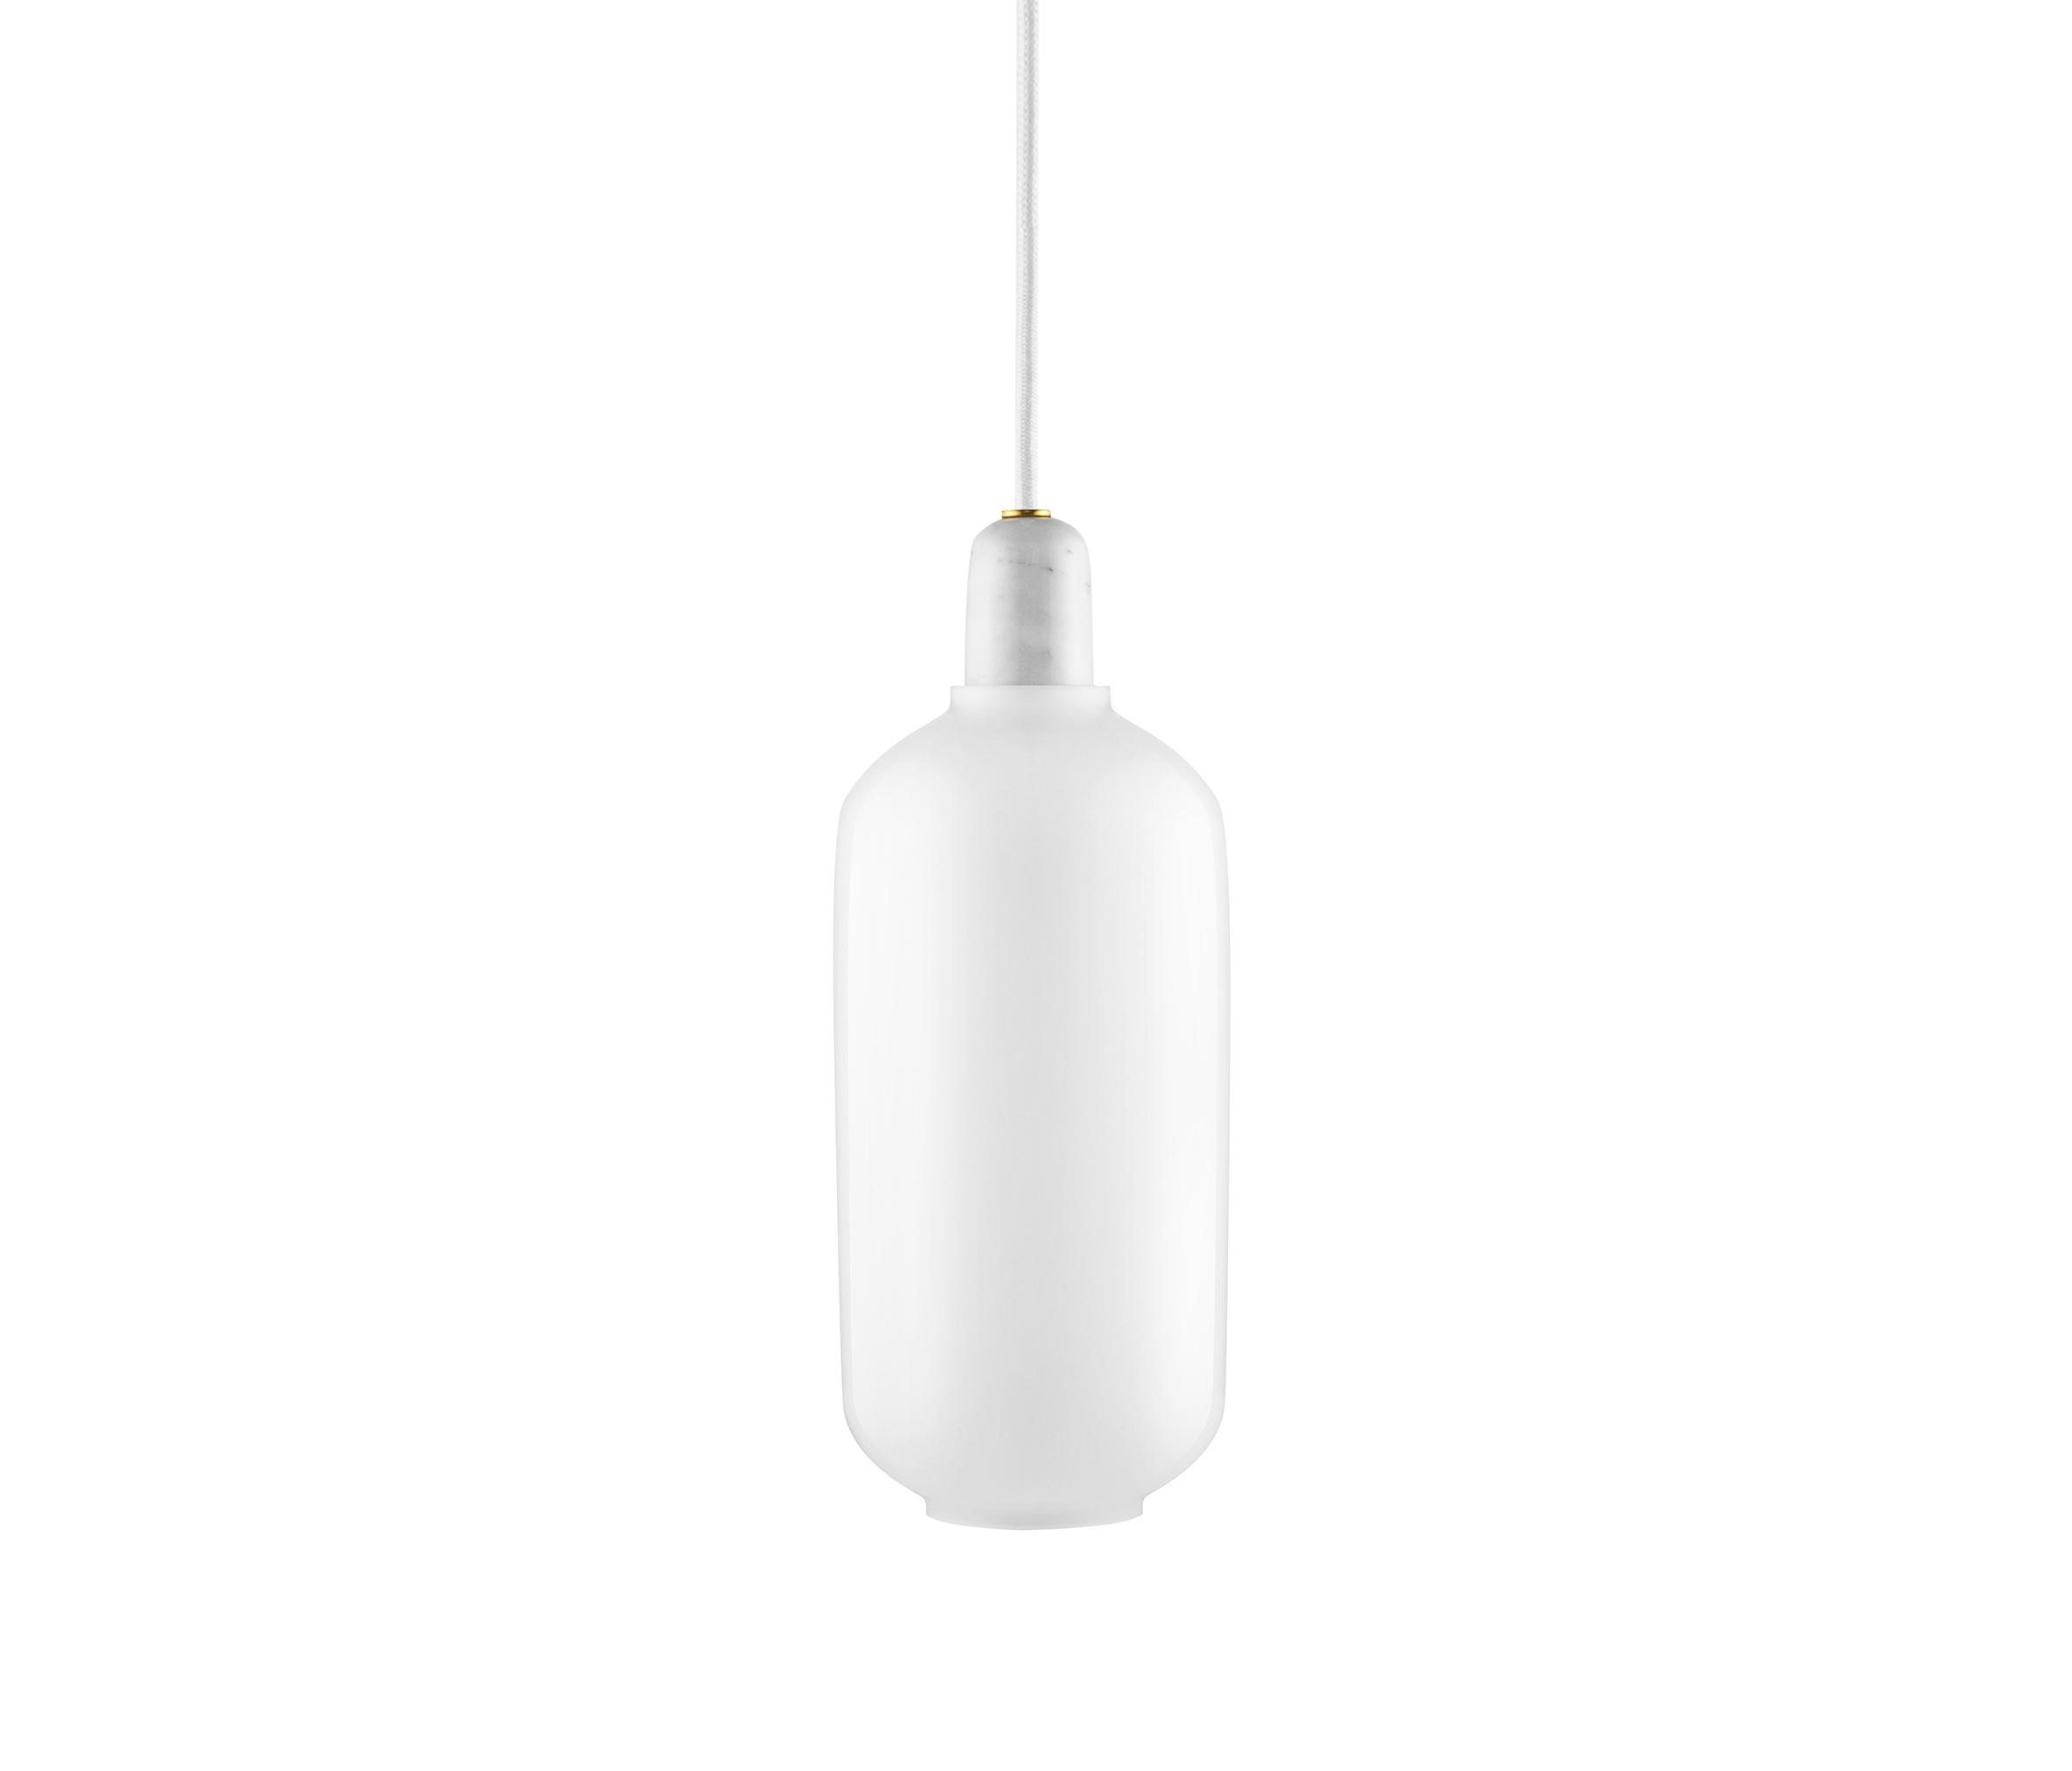 Home products company decorating ideas news amp media download contact - Home Products Company Decorating Ideas News Amp Media Download Contact Amp Lamp Large By Normann